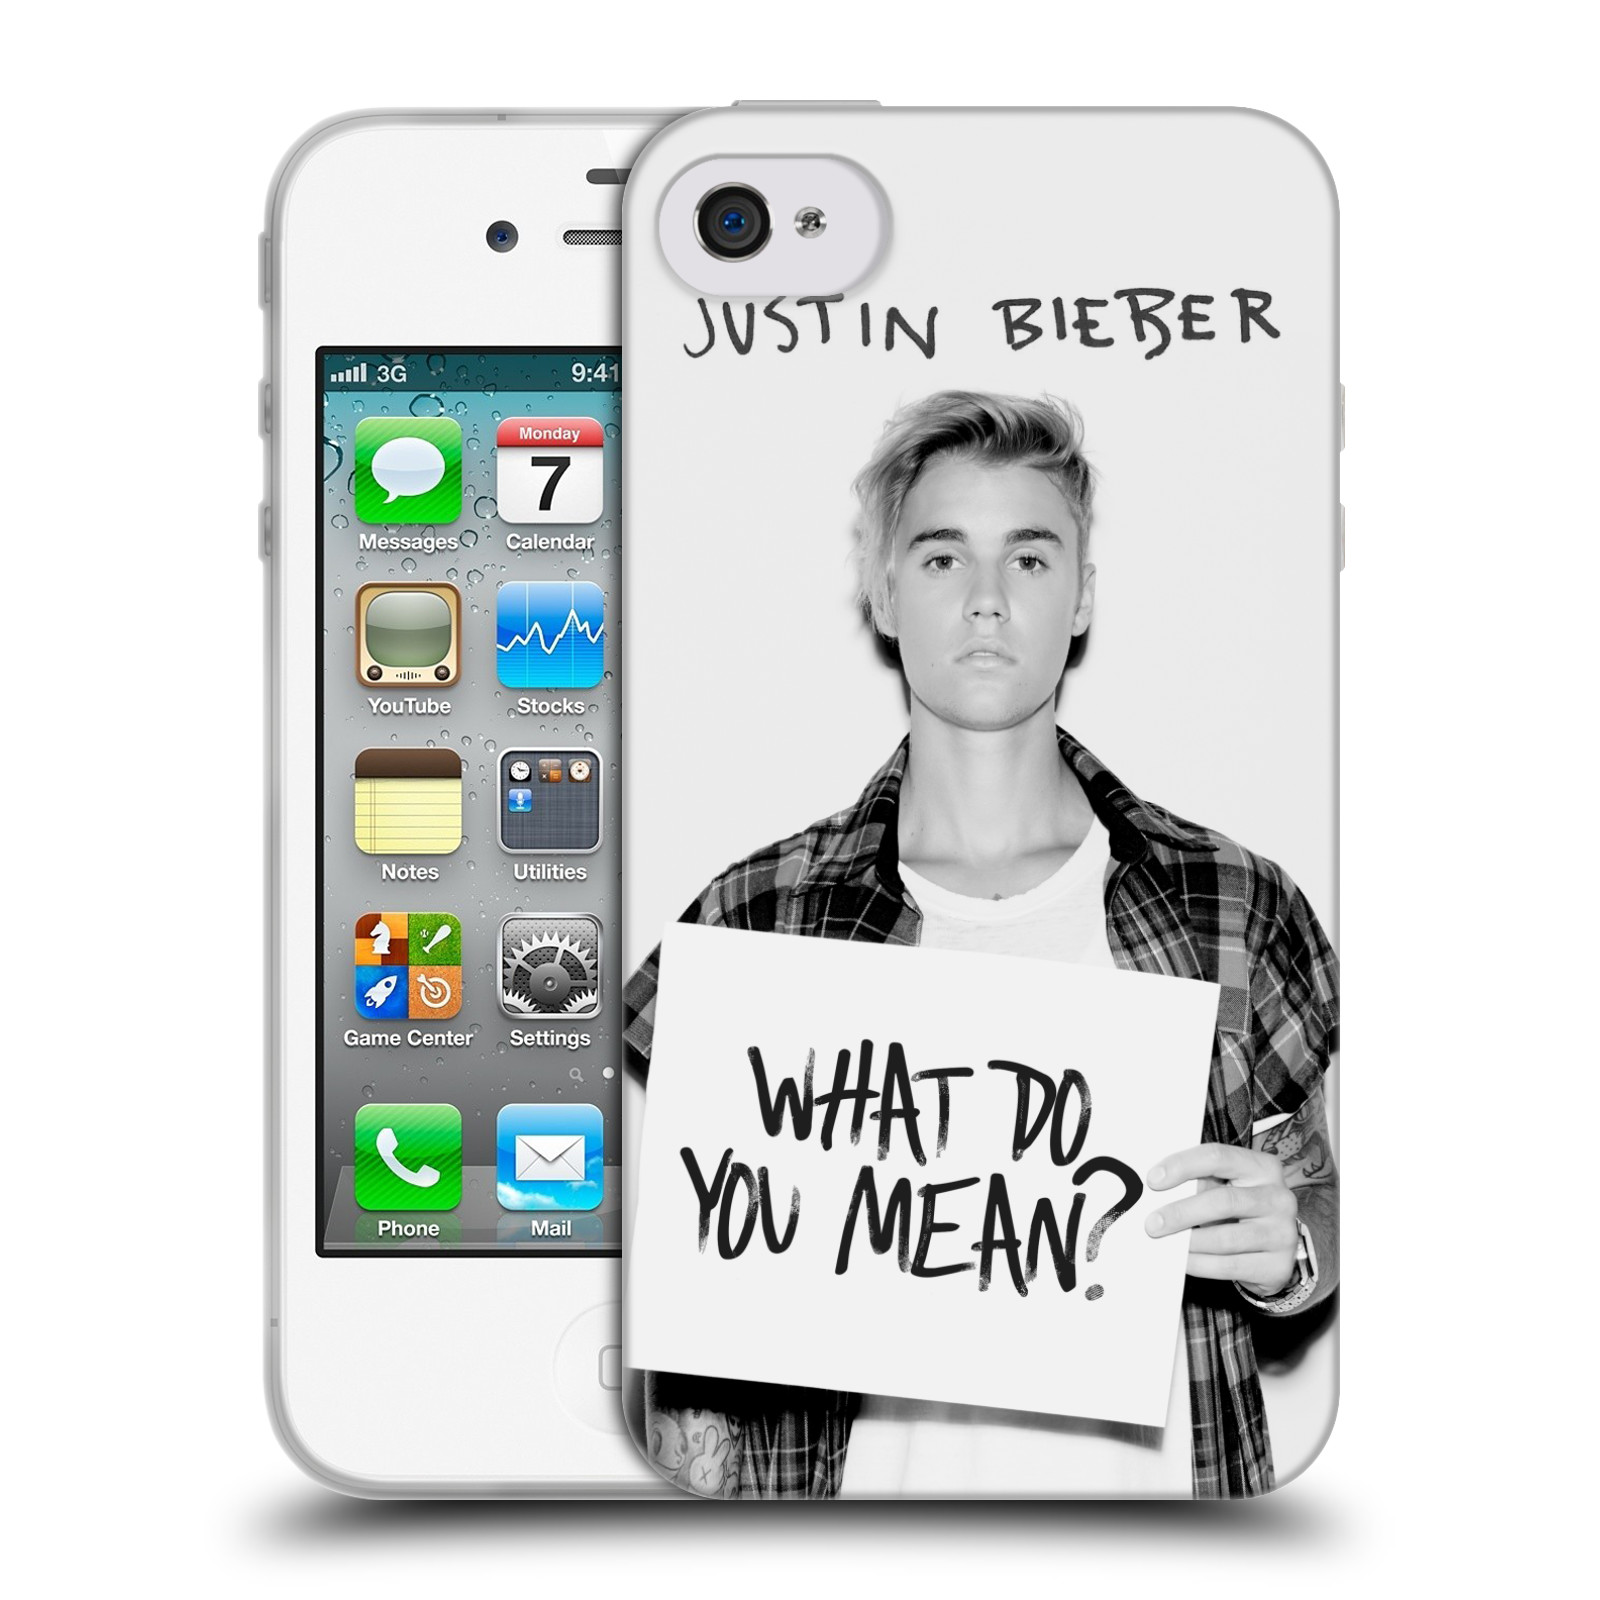 HEAD CASE silikonový obal na mobil Apple Iphone 4 / 4S originální potisk Justin Bieber What do you mean